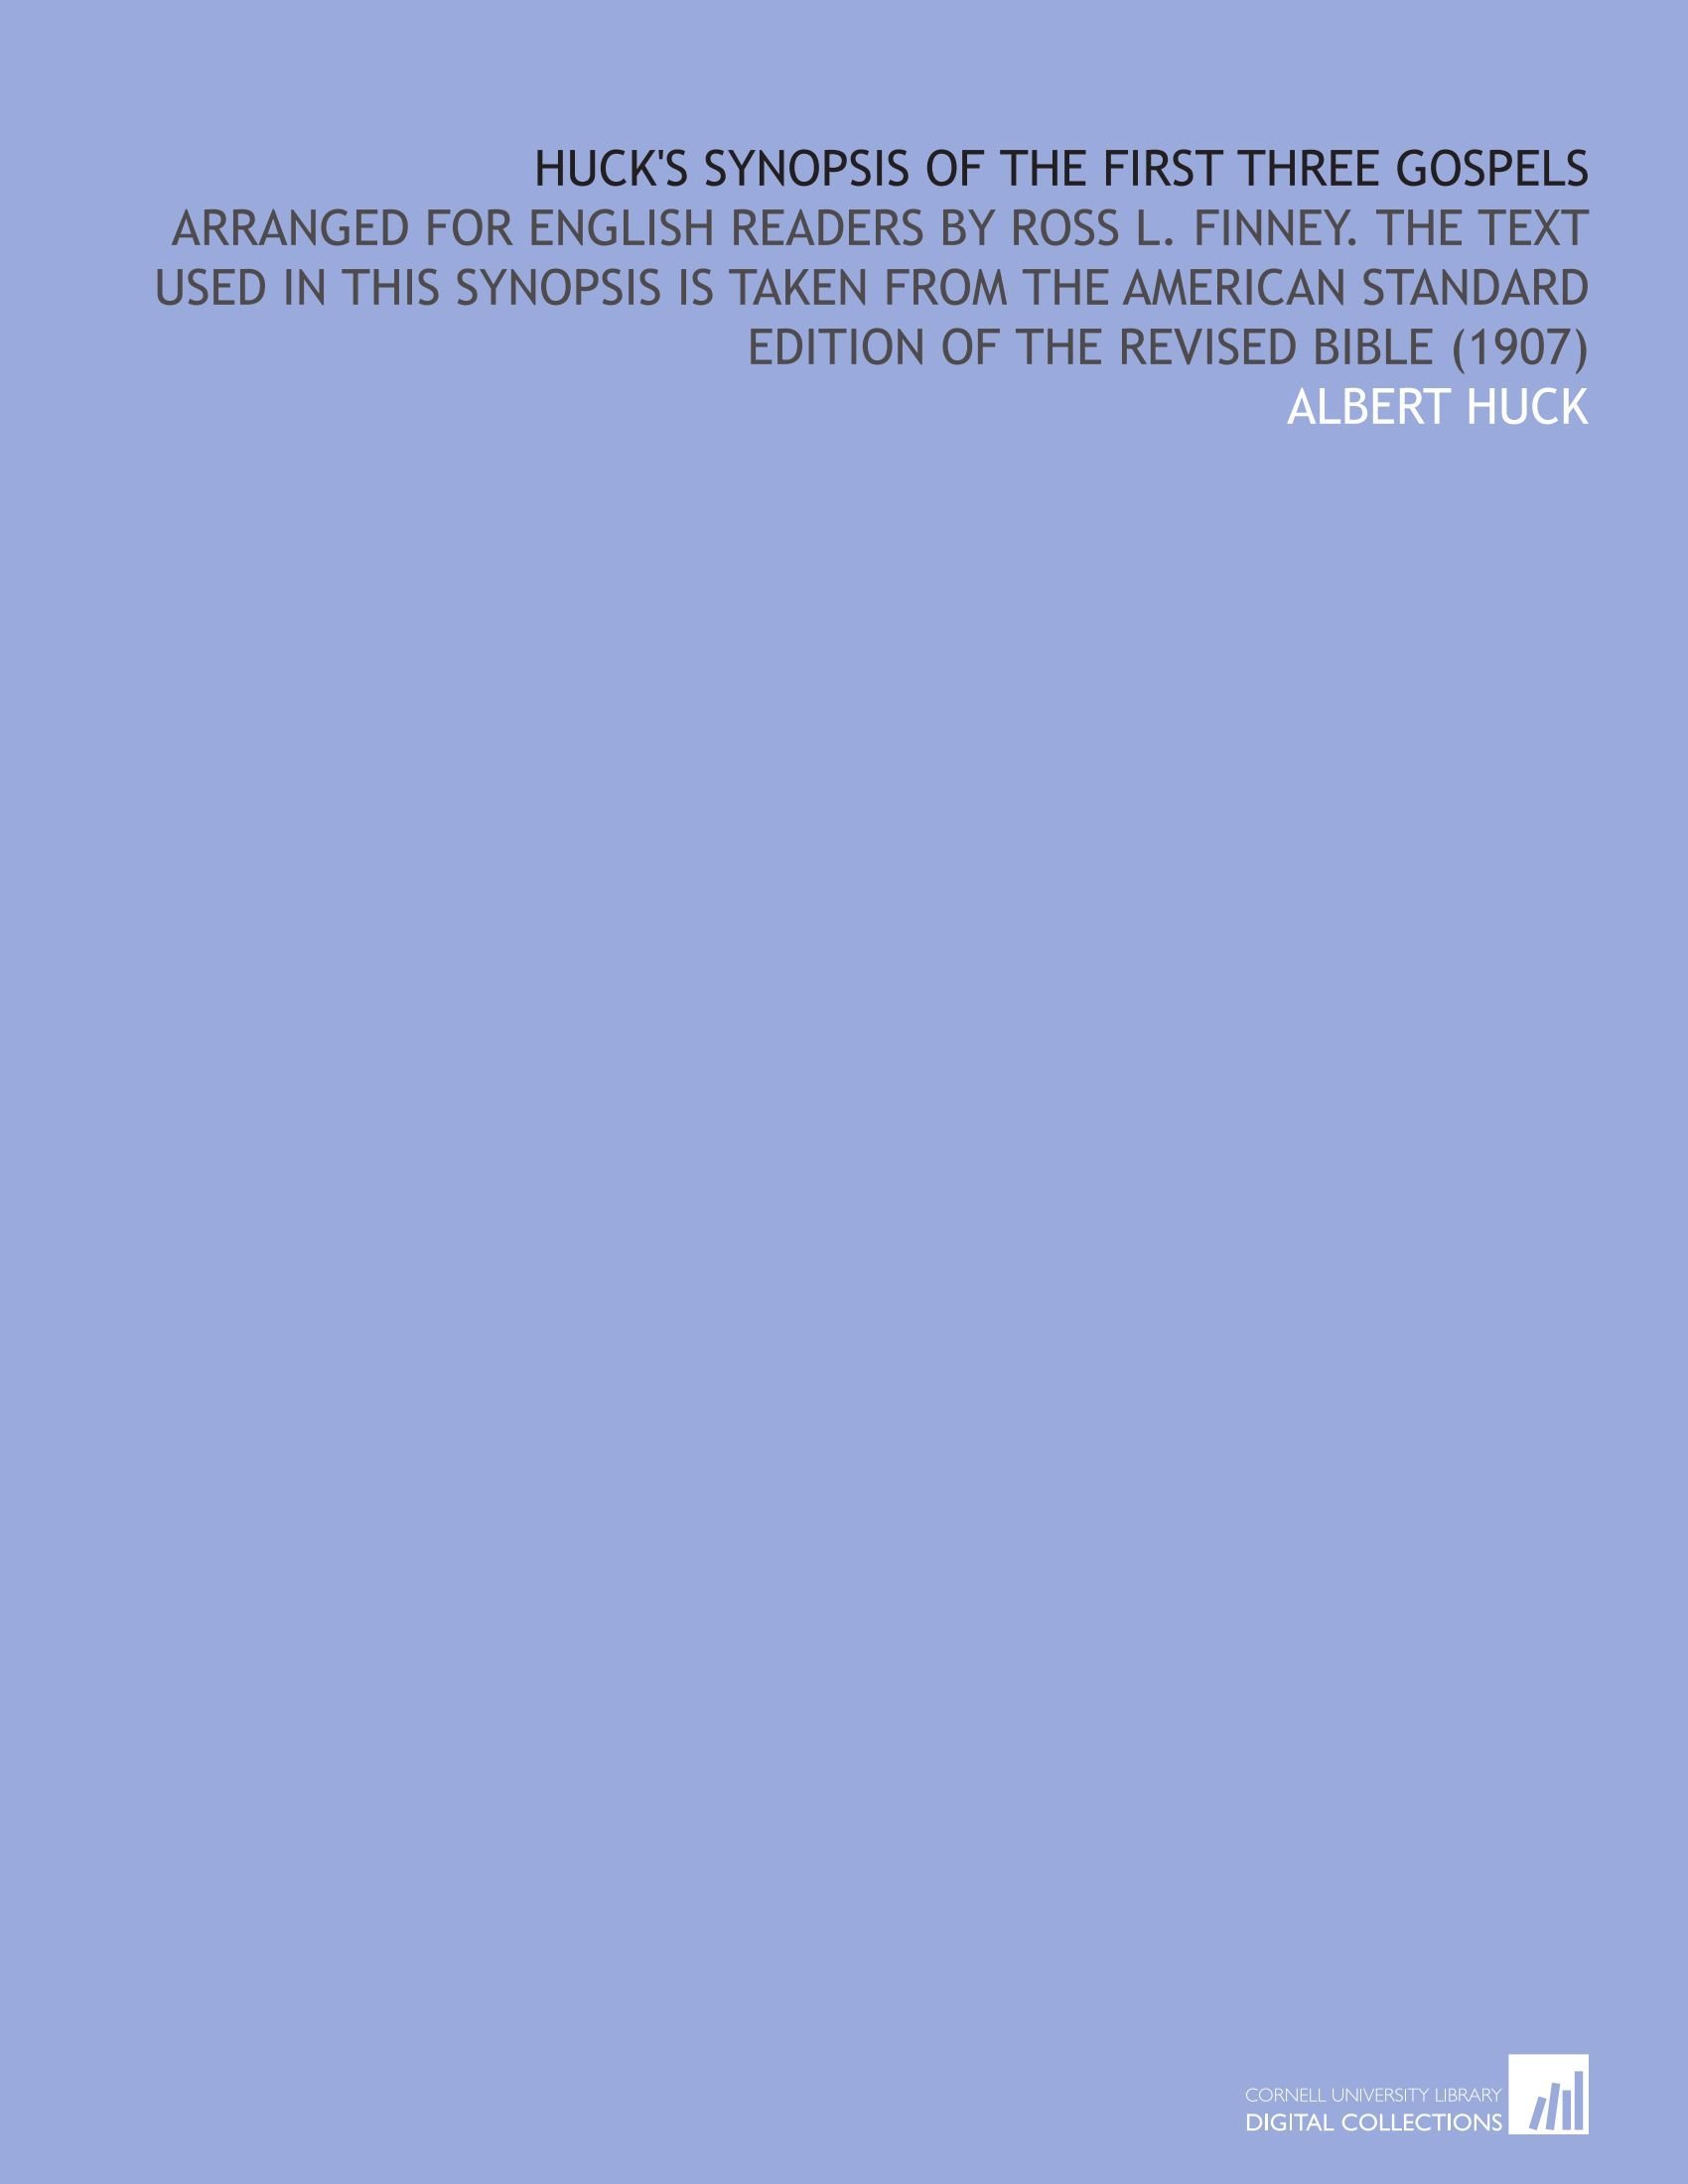 Download Huck's Synopsis of the First Three Gospels: Arranged for English Readers by Ross L. Finney. The Text Used in This Synopsis is Taken From the American Standard Edition of the Revised Bible (1907) pdf epub